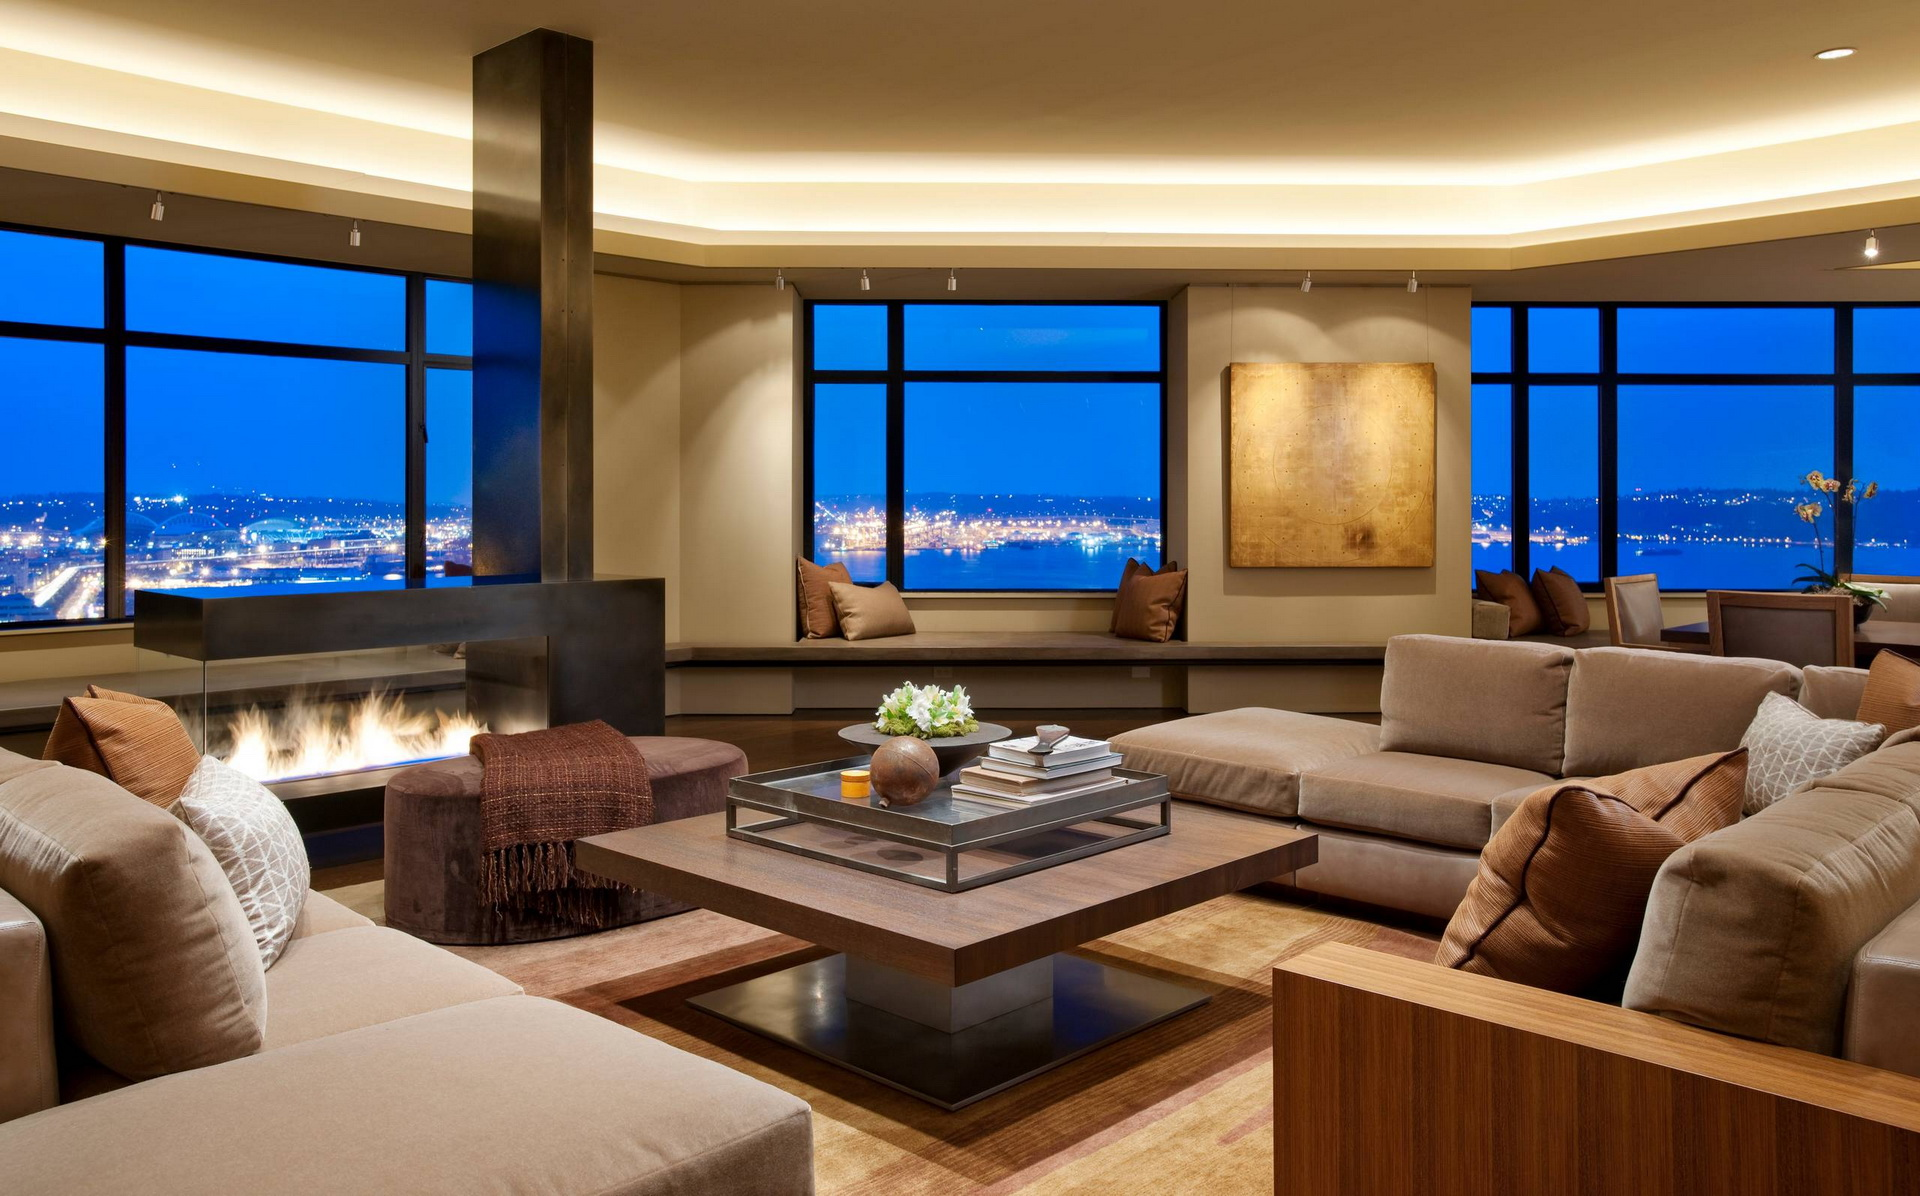 Living Room Interior Architecture